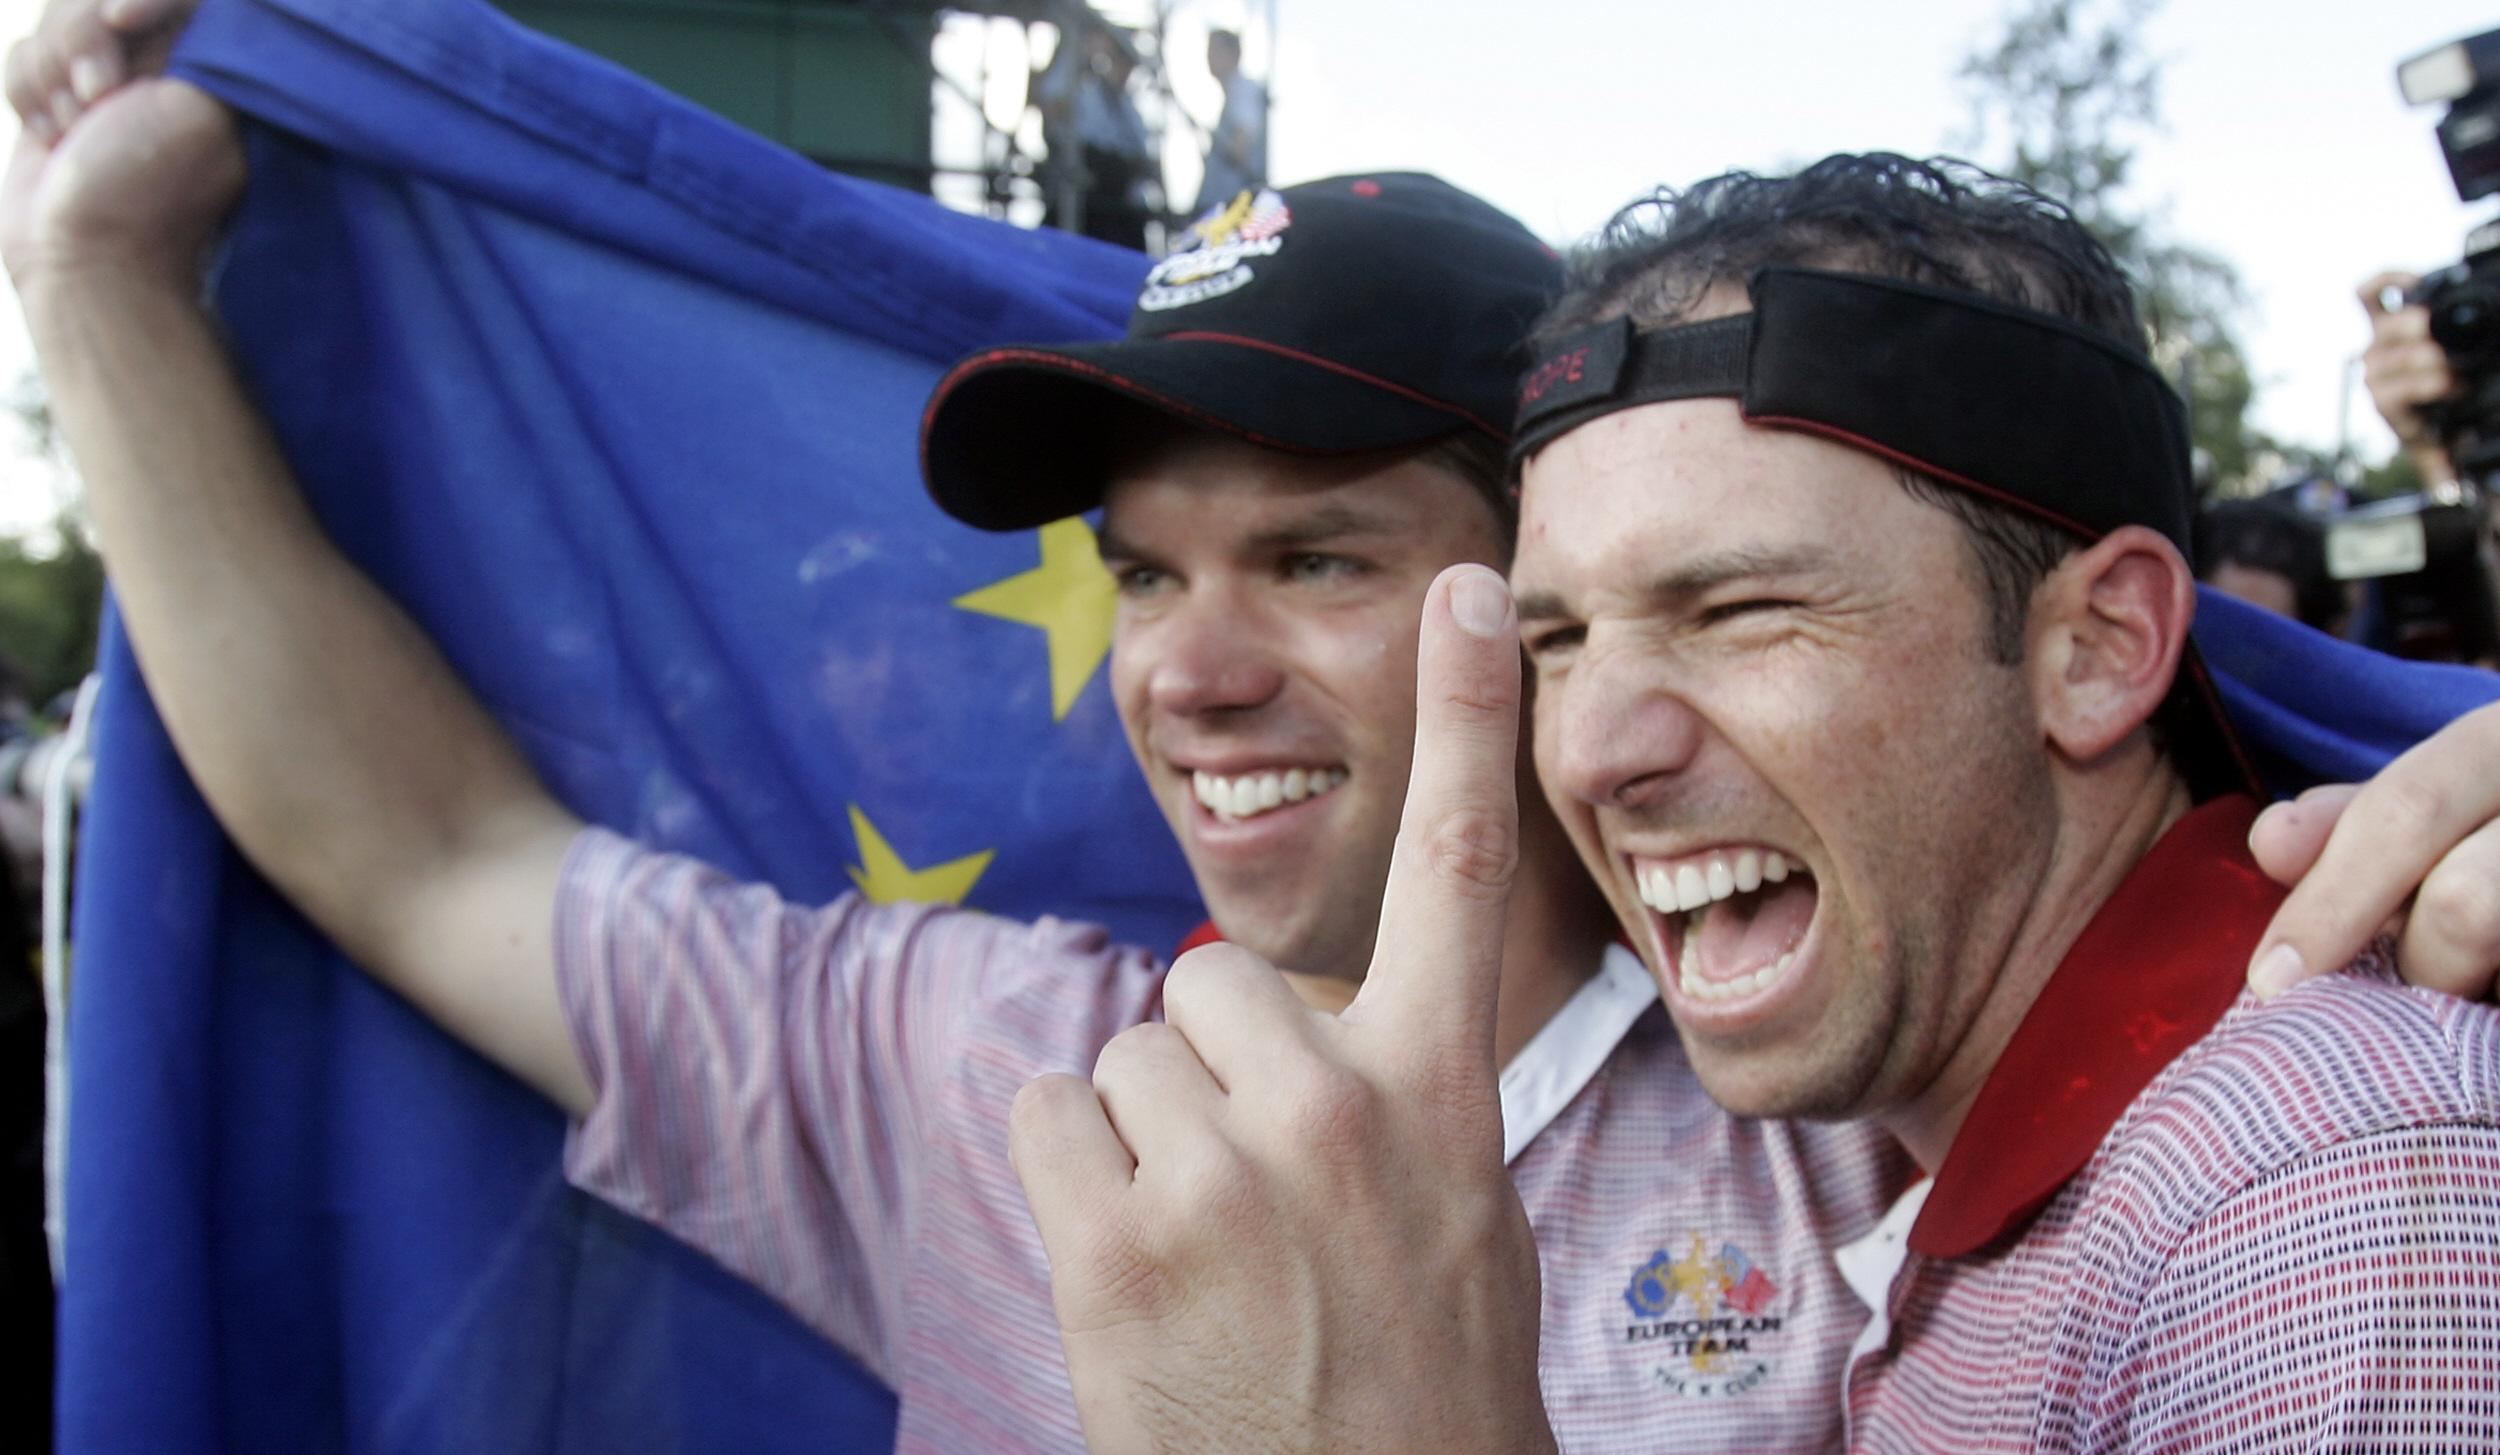 The Ryder Cup is up for grabs once more